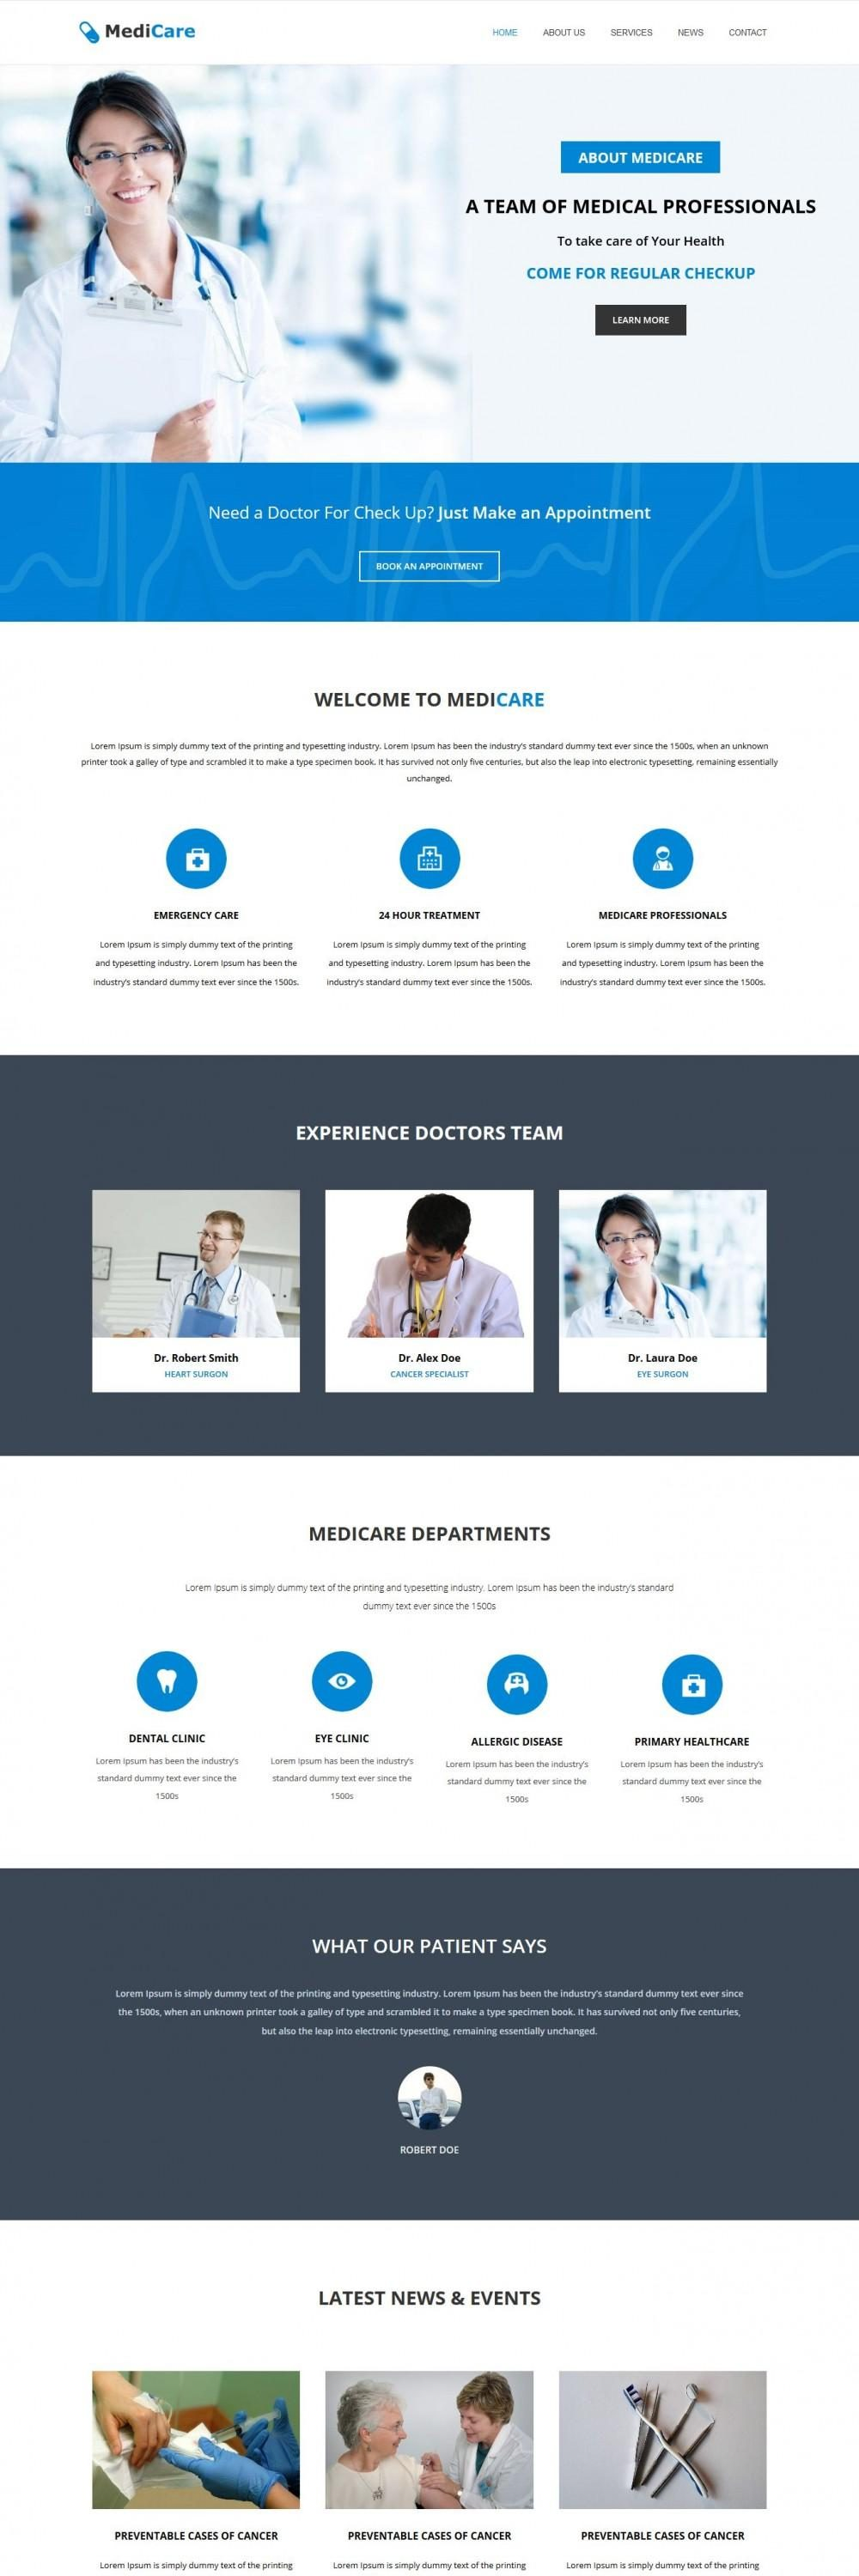 MediCare - Health Care Medical WordPress Theme